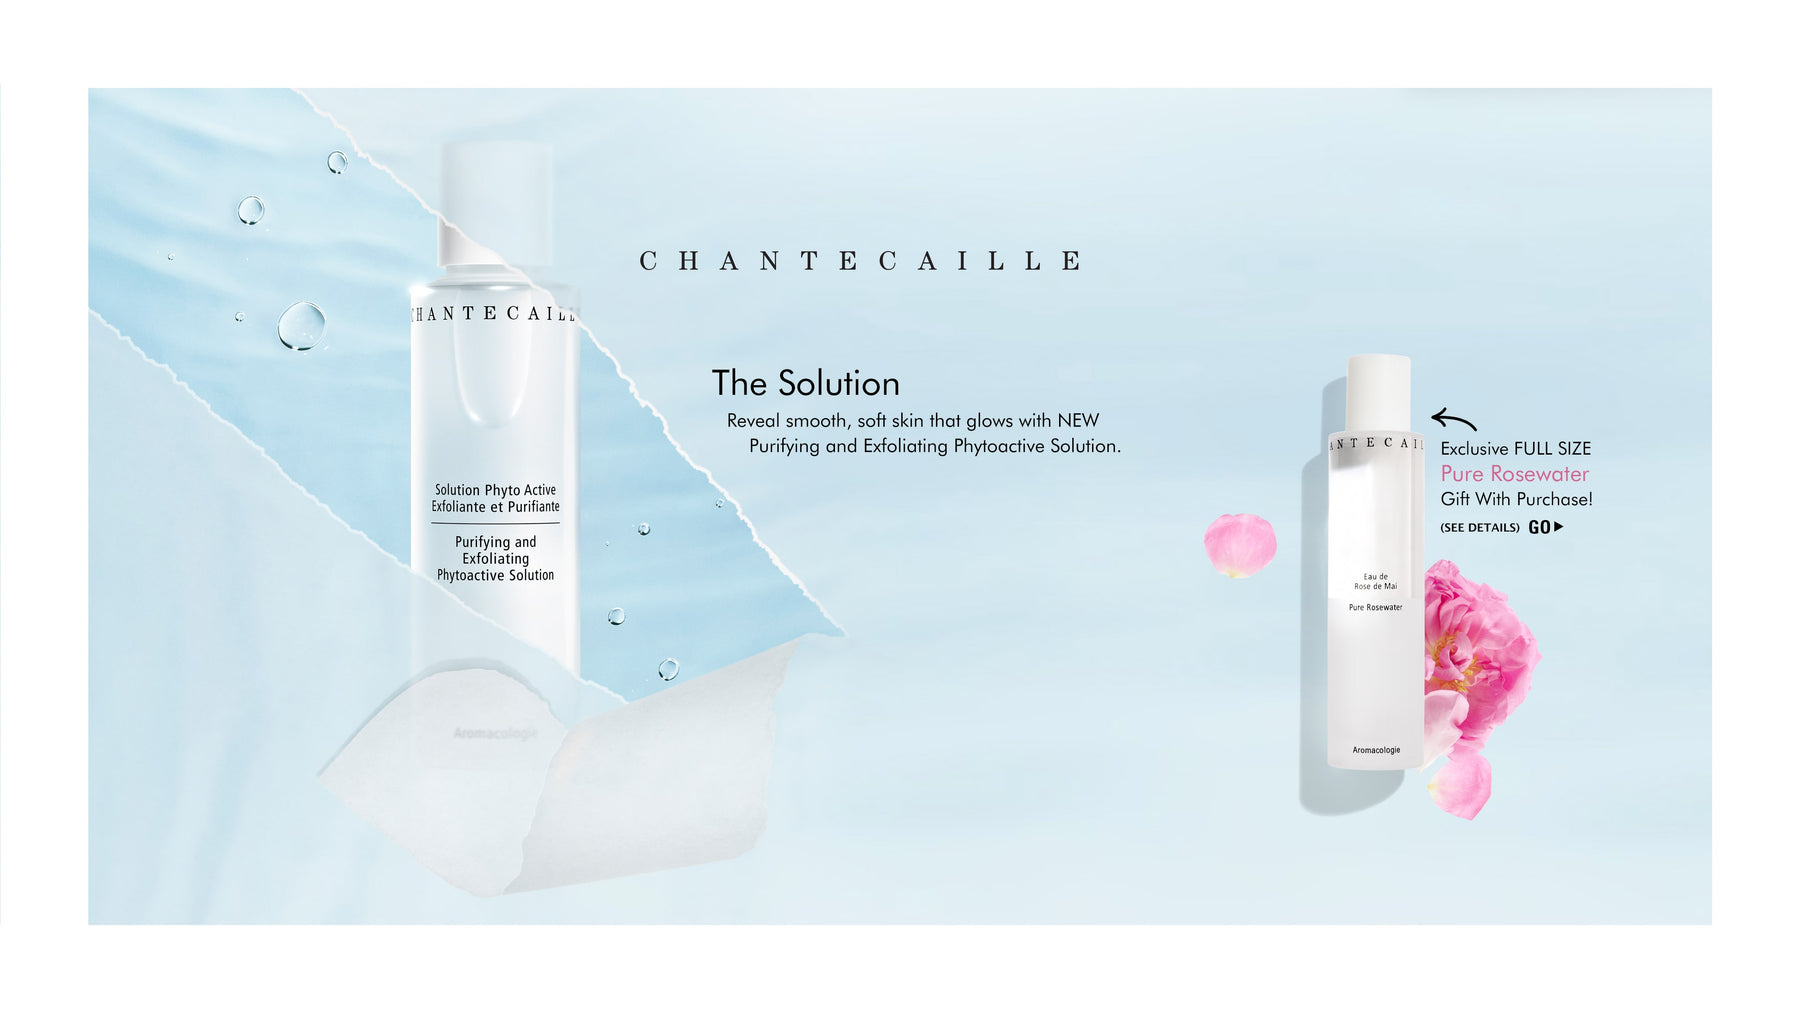 Chantecaille - The Solution: Reveal smooth, soft skin that glows with NEW Purifying and Exfoliating Phytoactive Solution. Exclusive FULL SIZE Chantecaille Pure Rosewater Gift With Purchase! SEE DETAILS - GO!